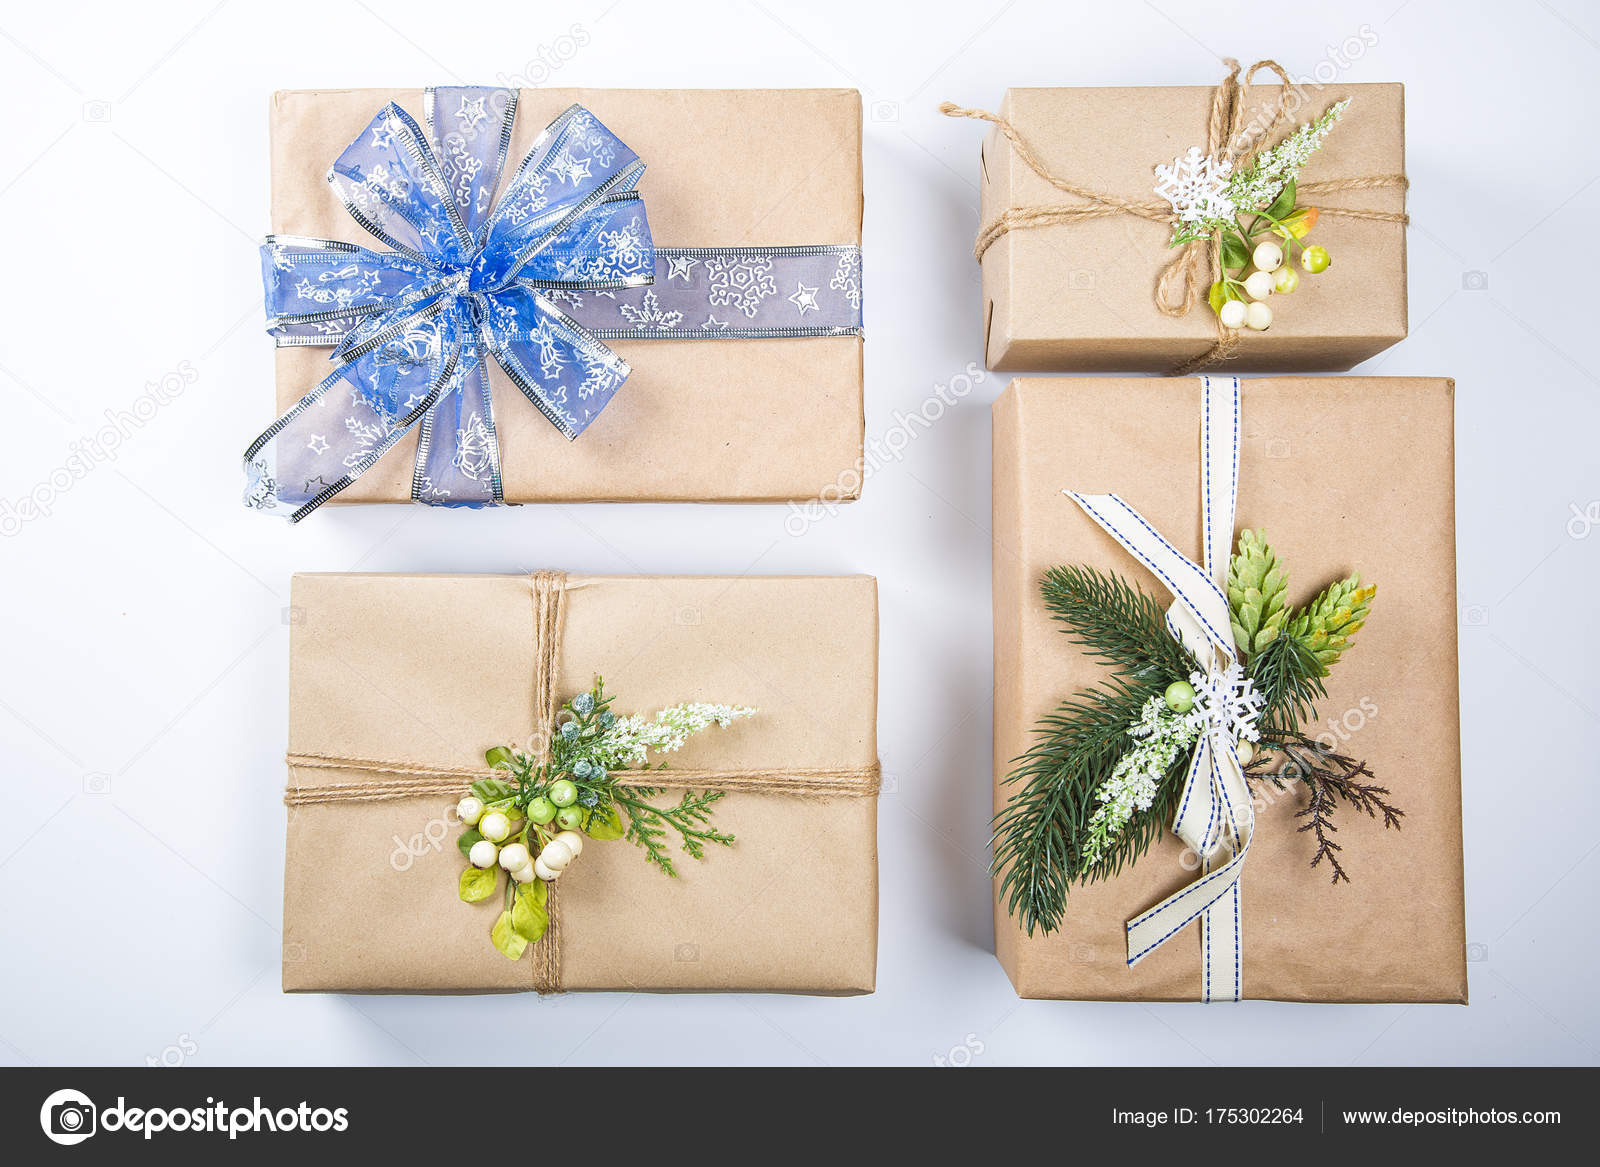 classy christmas gifts box presents in brown paper new year decor on white merry christmas card background photo by lilichka2015